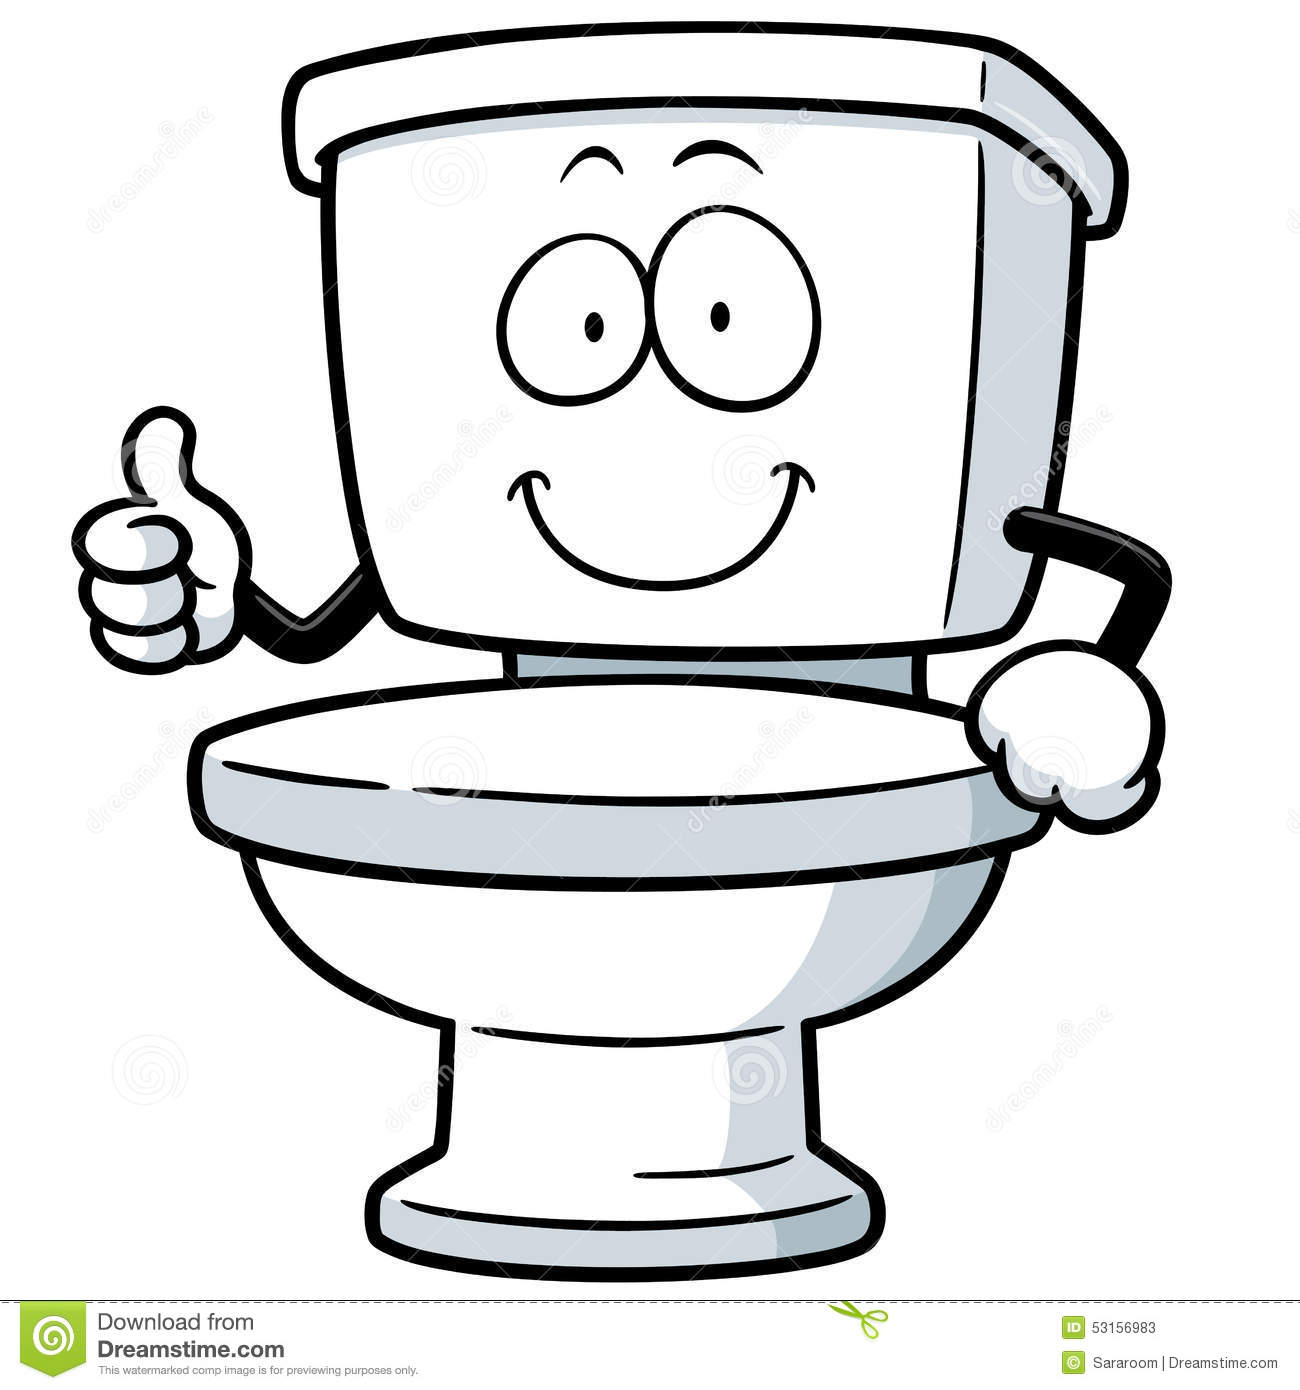 Cartoon Pictures Of Bathrooms: Toilet Stock Vector. Illustration Of Holding, Isolated